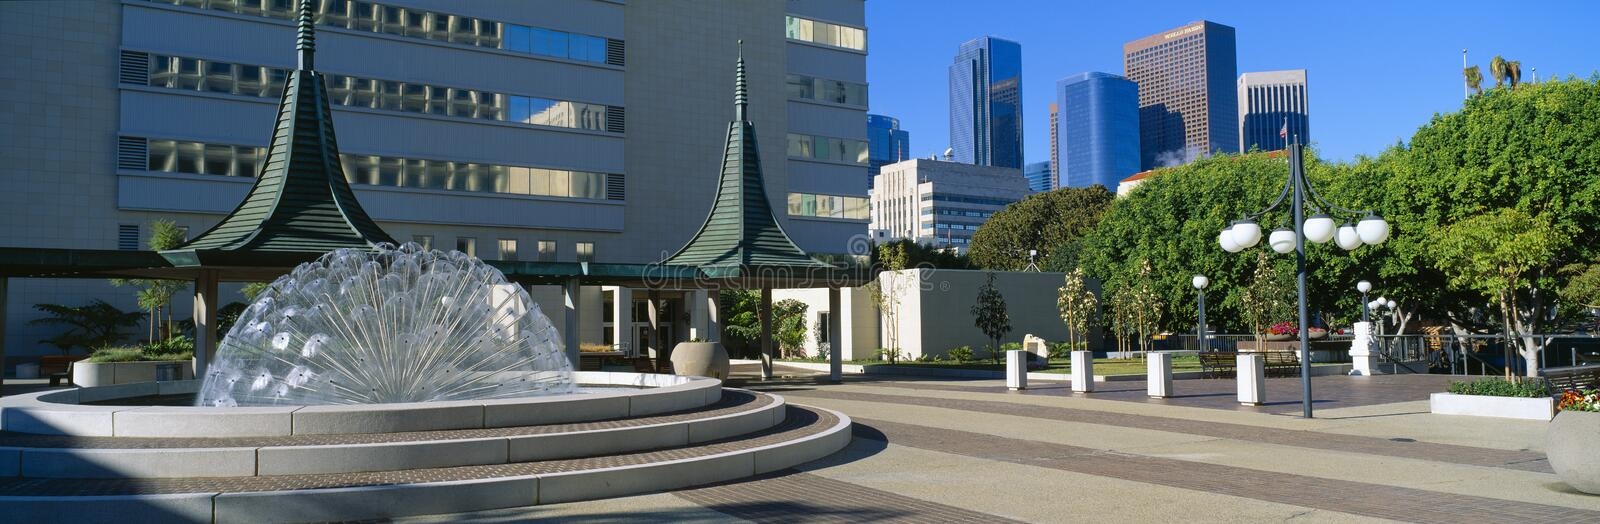 Civic Center East, Los Angeles, California royalty free stock photography